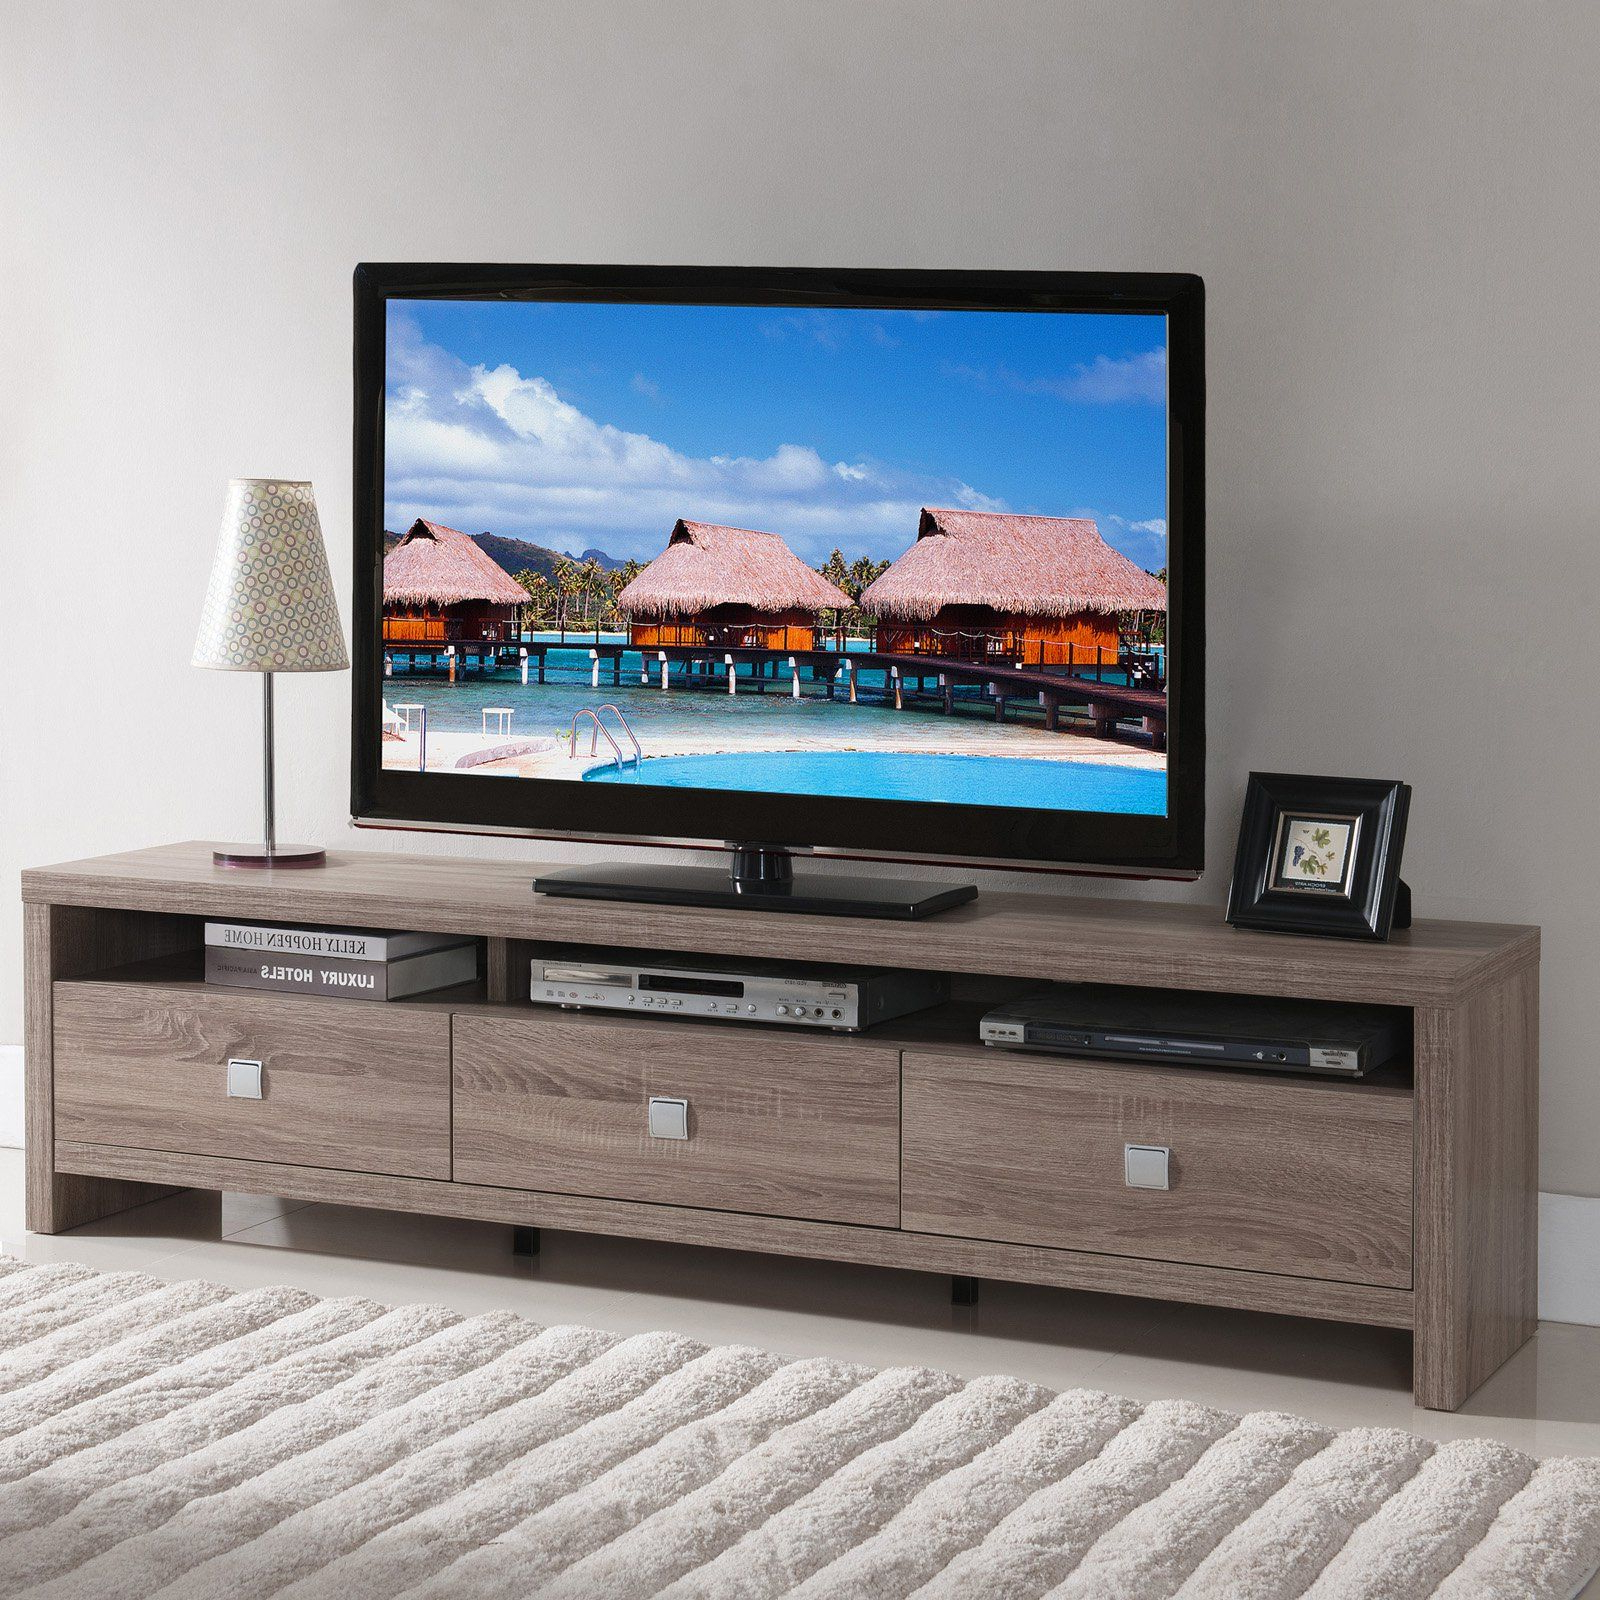 Furniture Of America Contemporary Tv Stand | From Hayneedle Intended For Kenzie 60 Inch Open Display Tv Stands (Gallery 14 of 20)